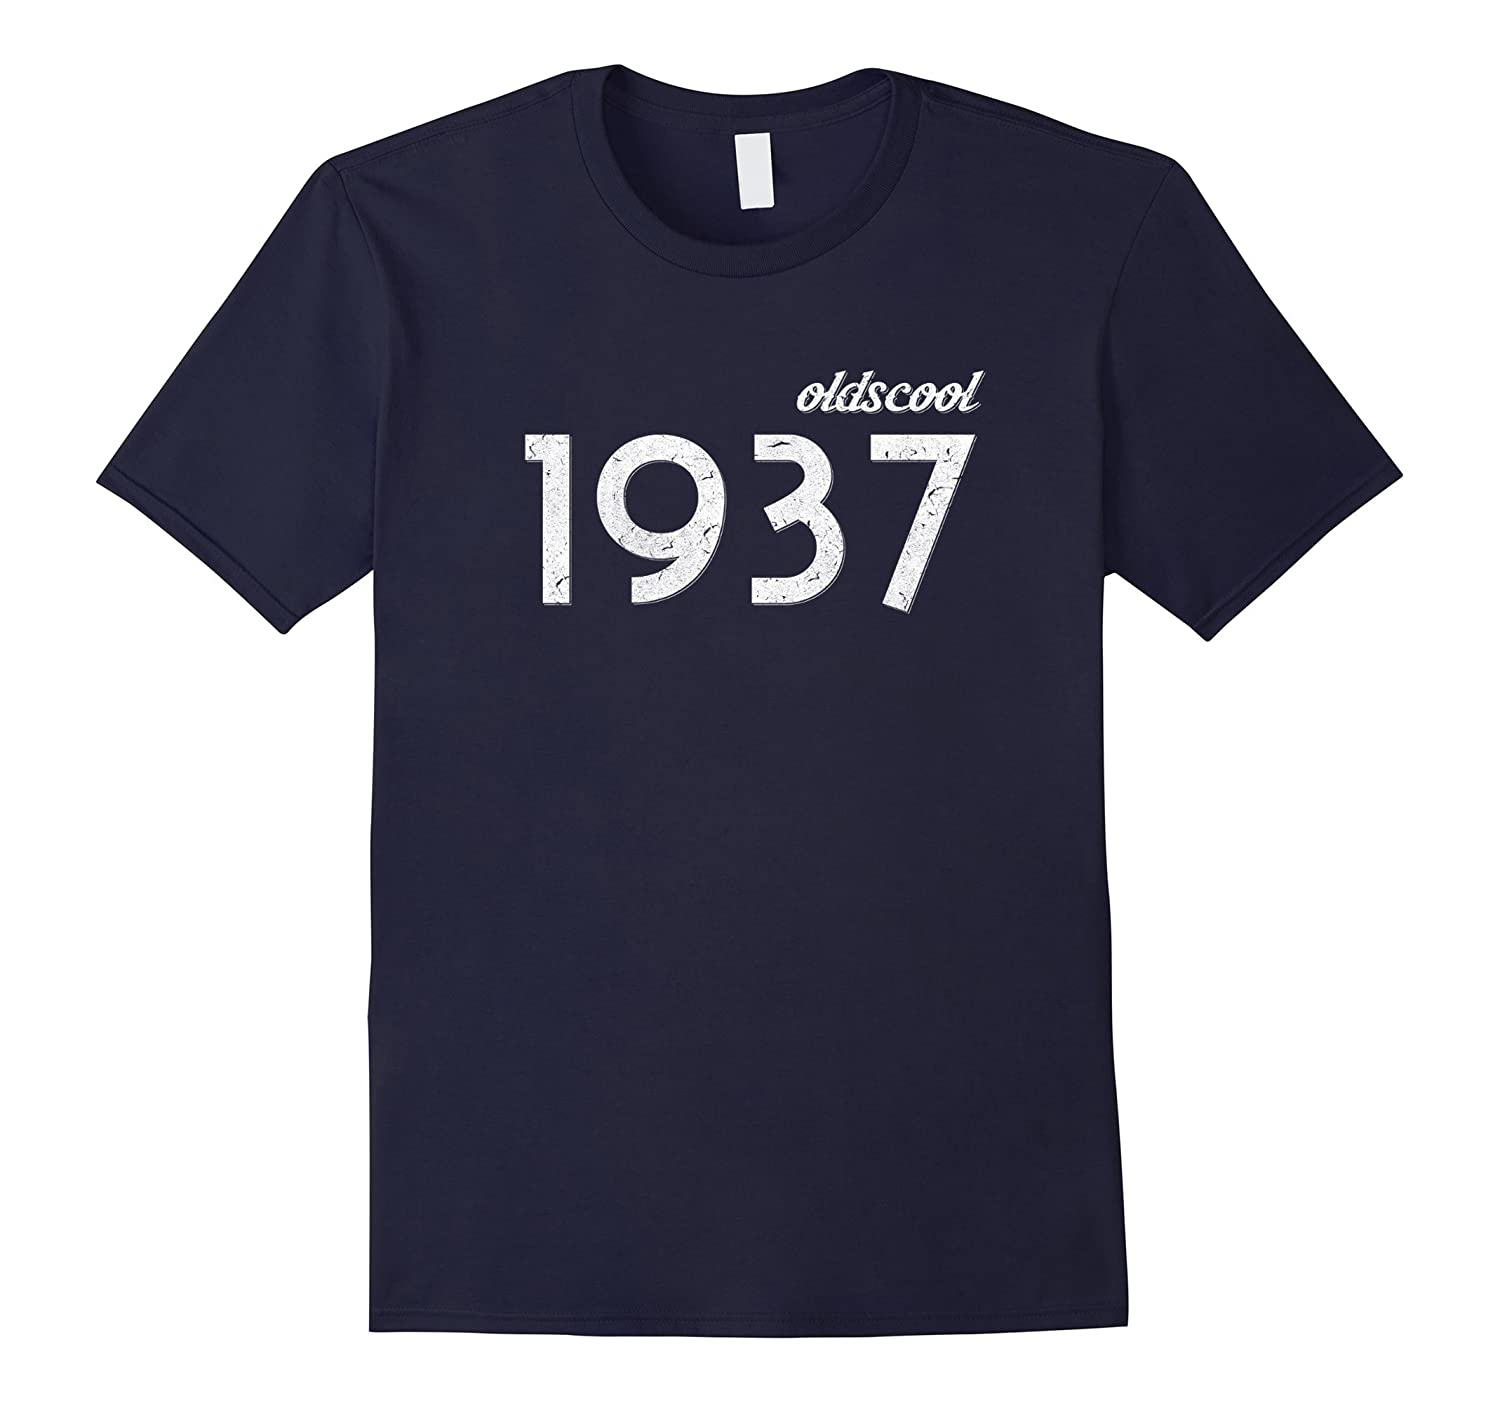 Oldscool T-shirt Old Scool 80th Birthday Gift Vintage 1937-Art